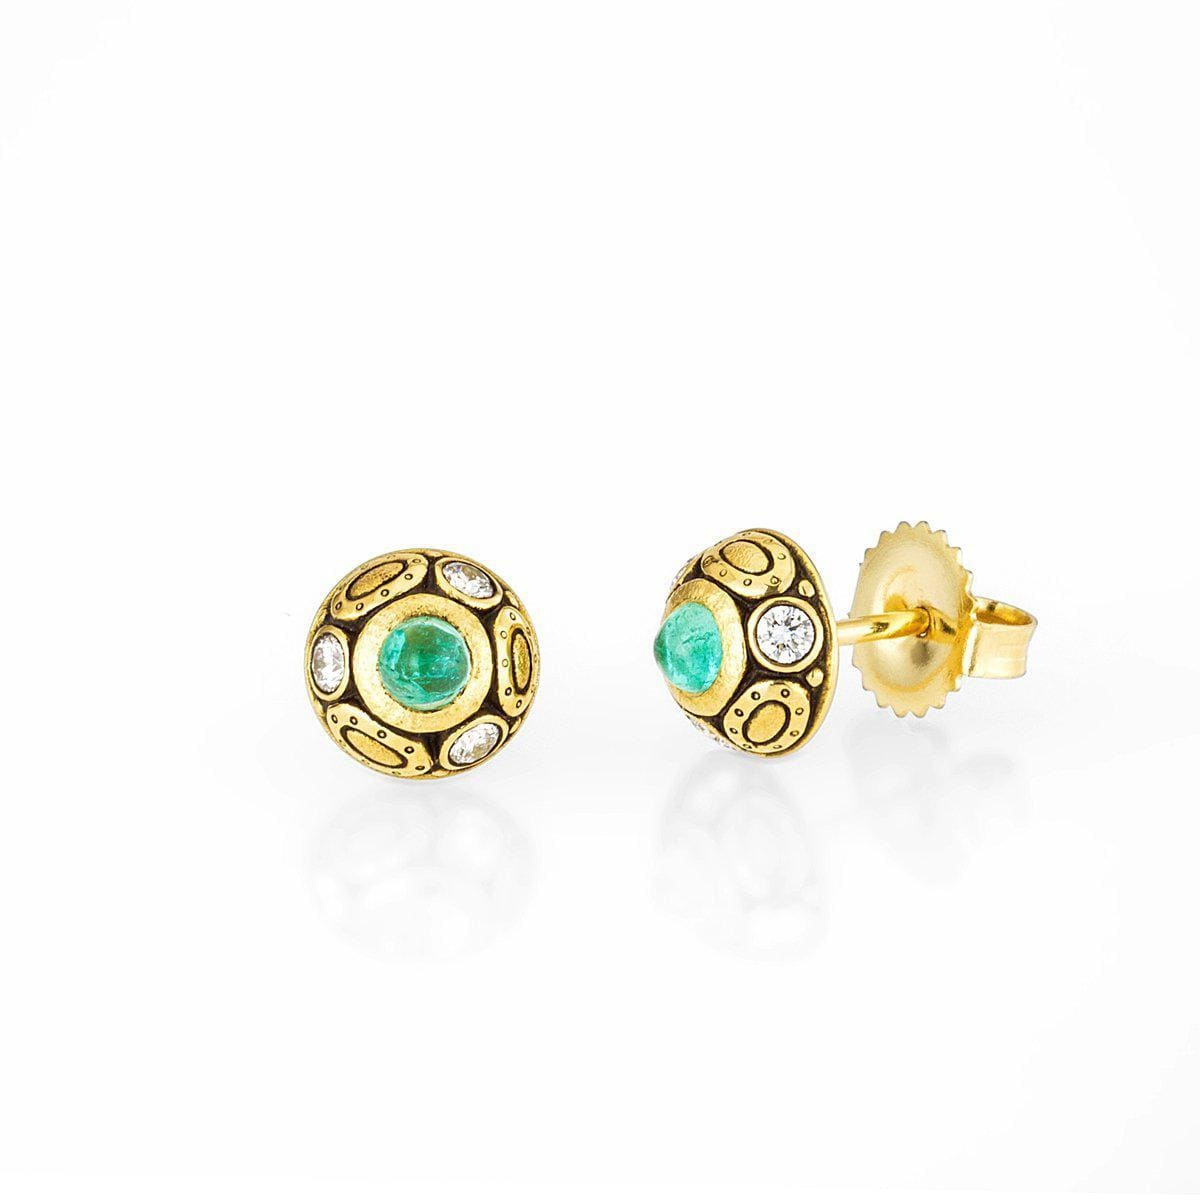 18K Oval Work Cabochon Paraiba Tourmaline & Diamond Earrings - E-69